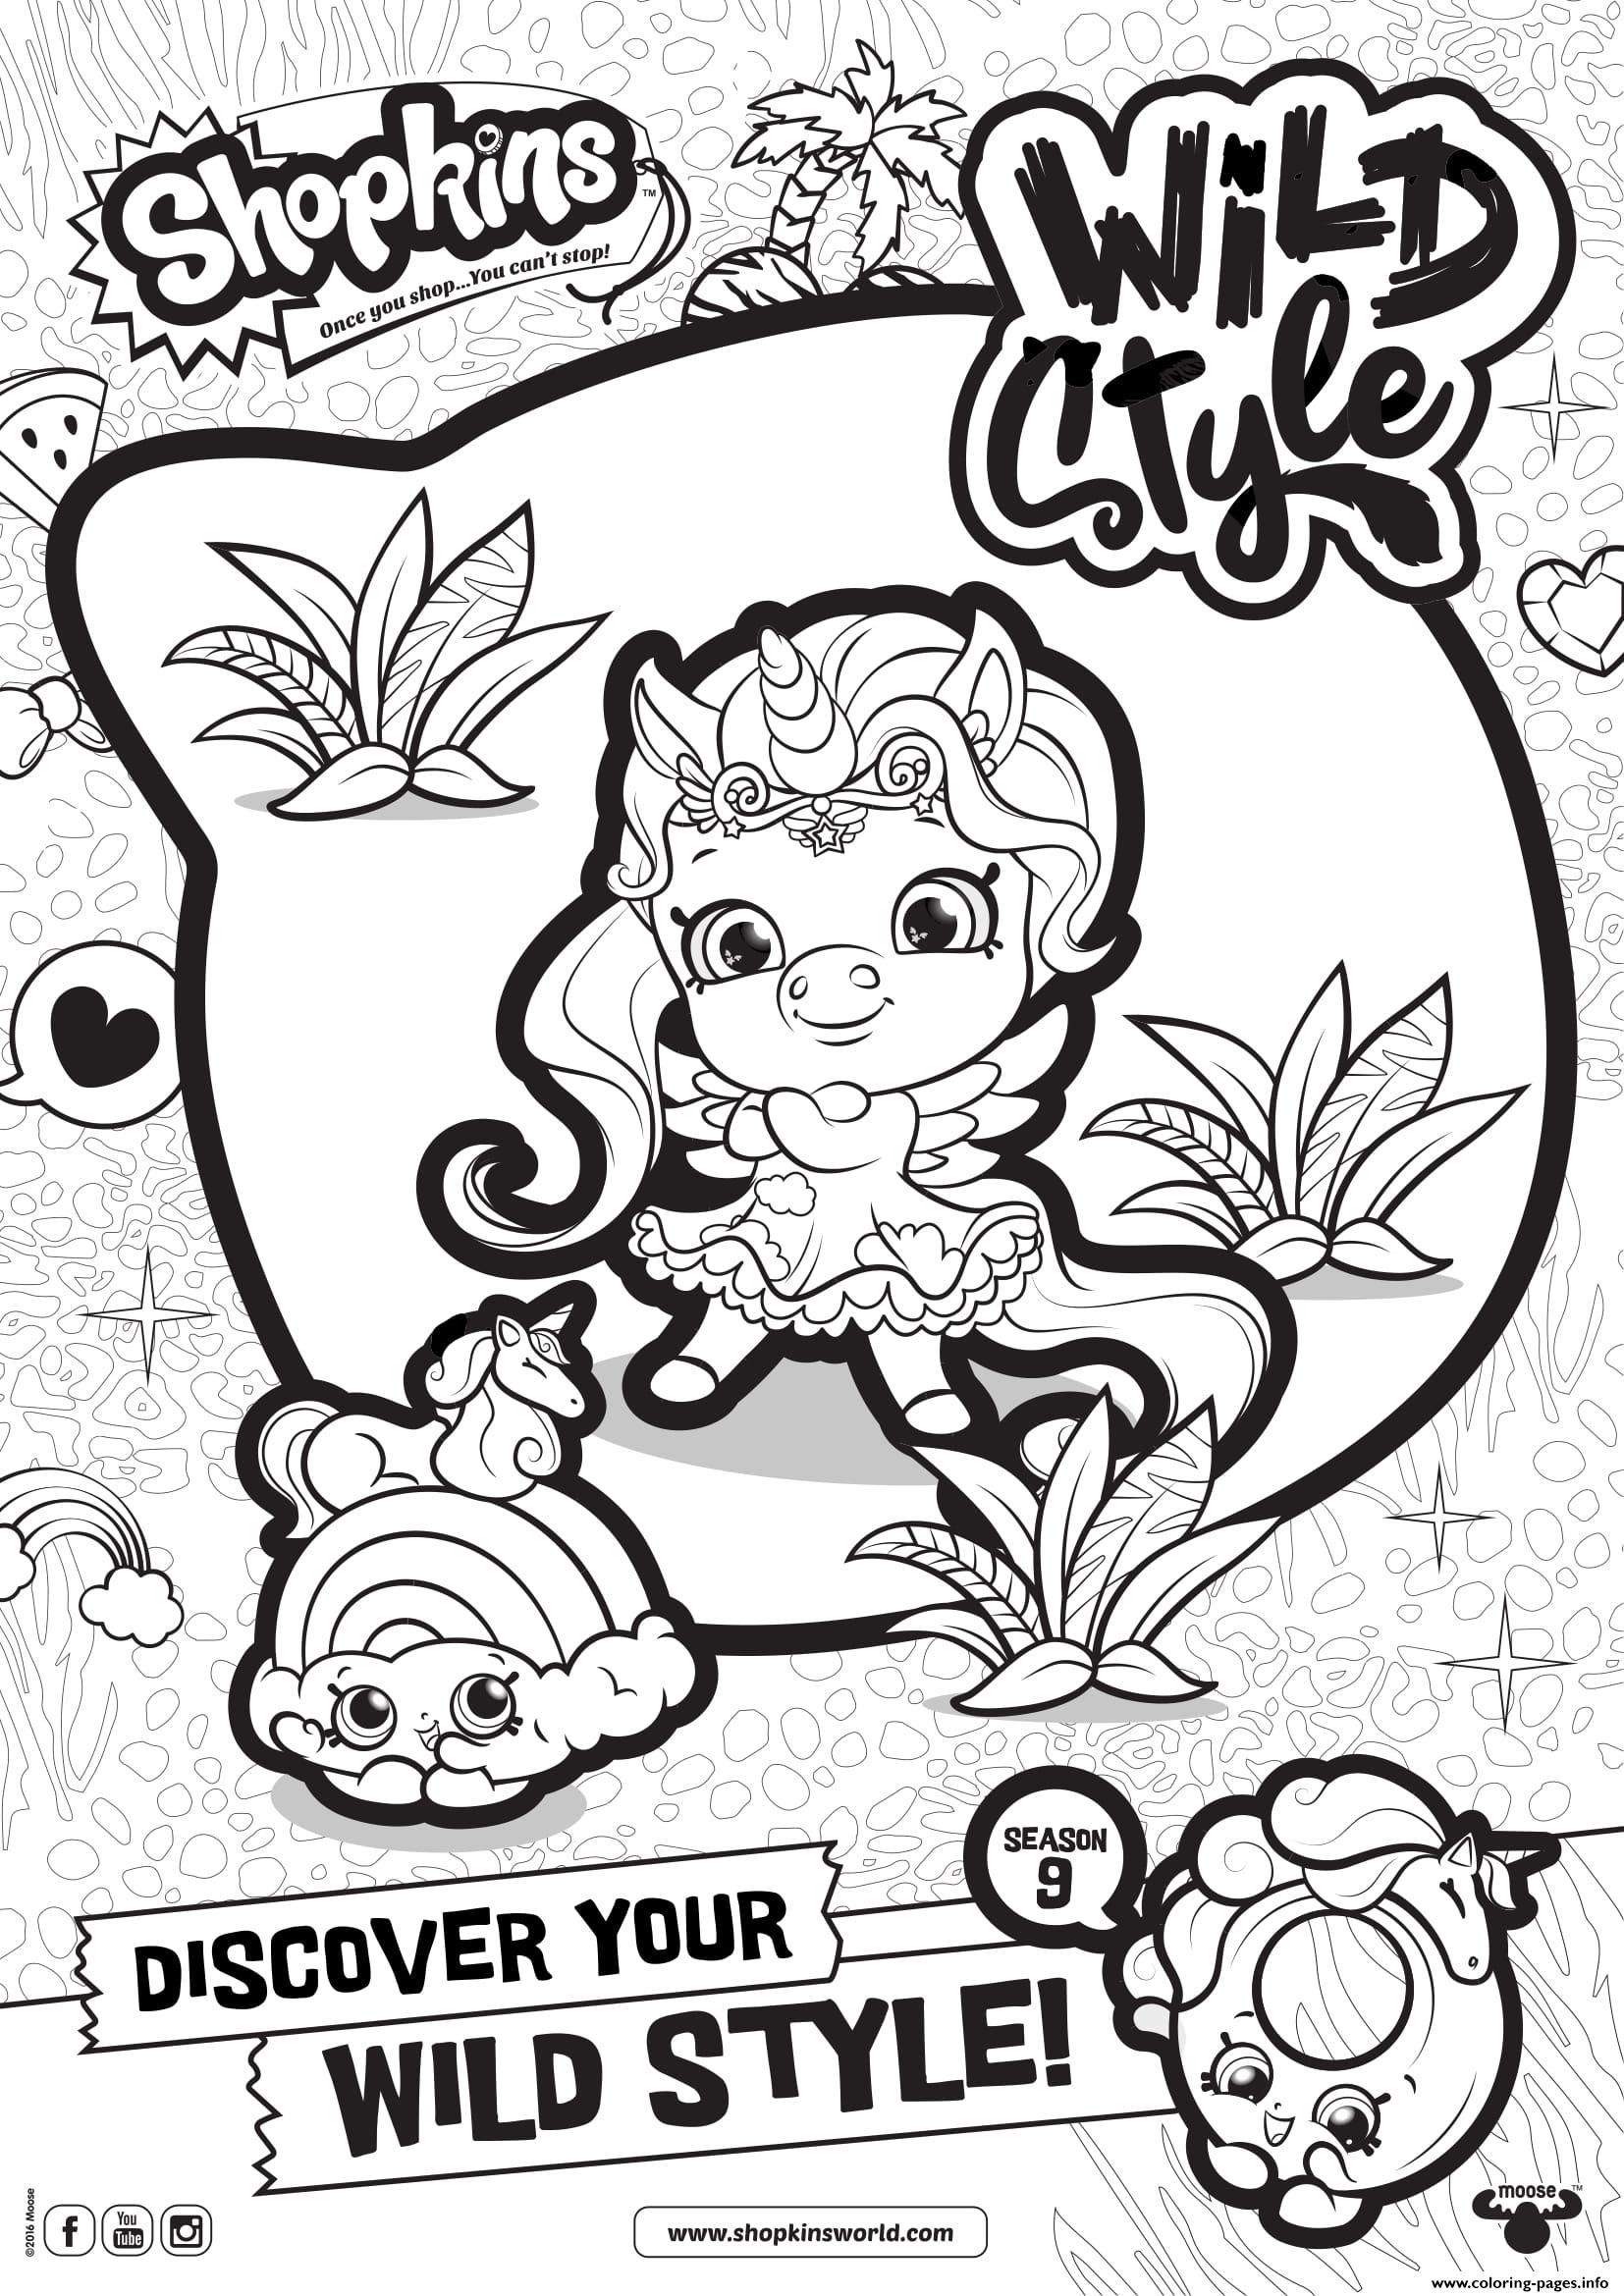 shopkins world coloring pages at free for personal use shopkins world coloring. Black Bedroom Furniture Sets. Home Design Ideas